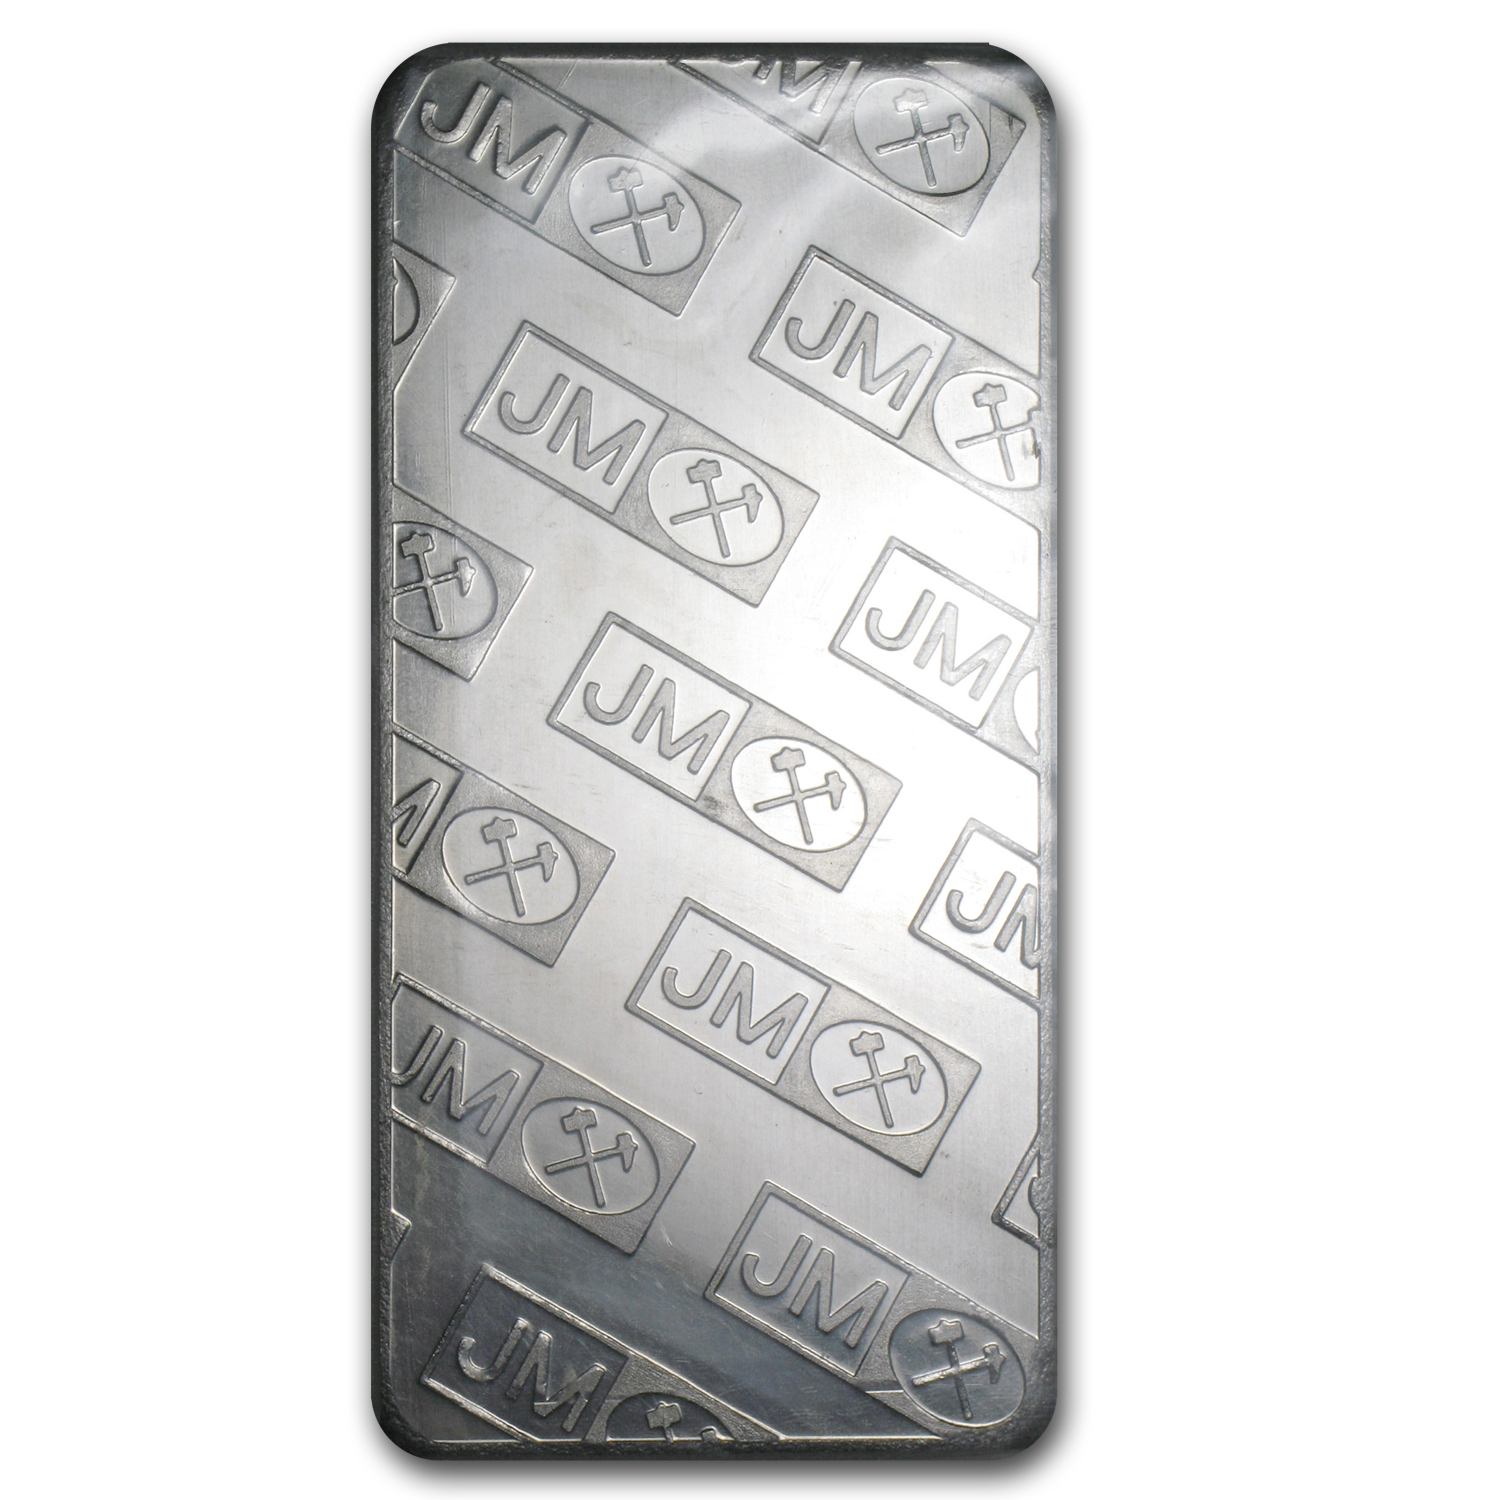 10 oz Palladium Bar - Johnson Matthey (Logo Back, No Assay)